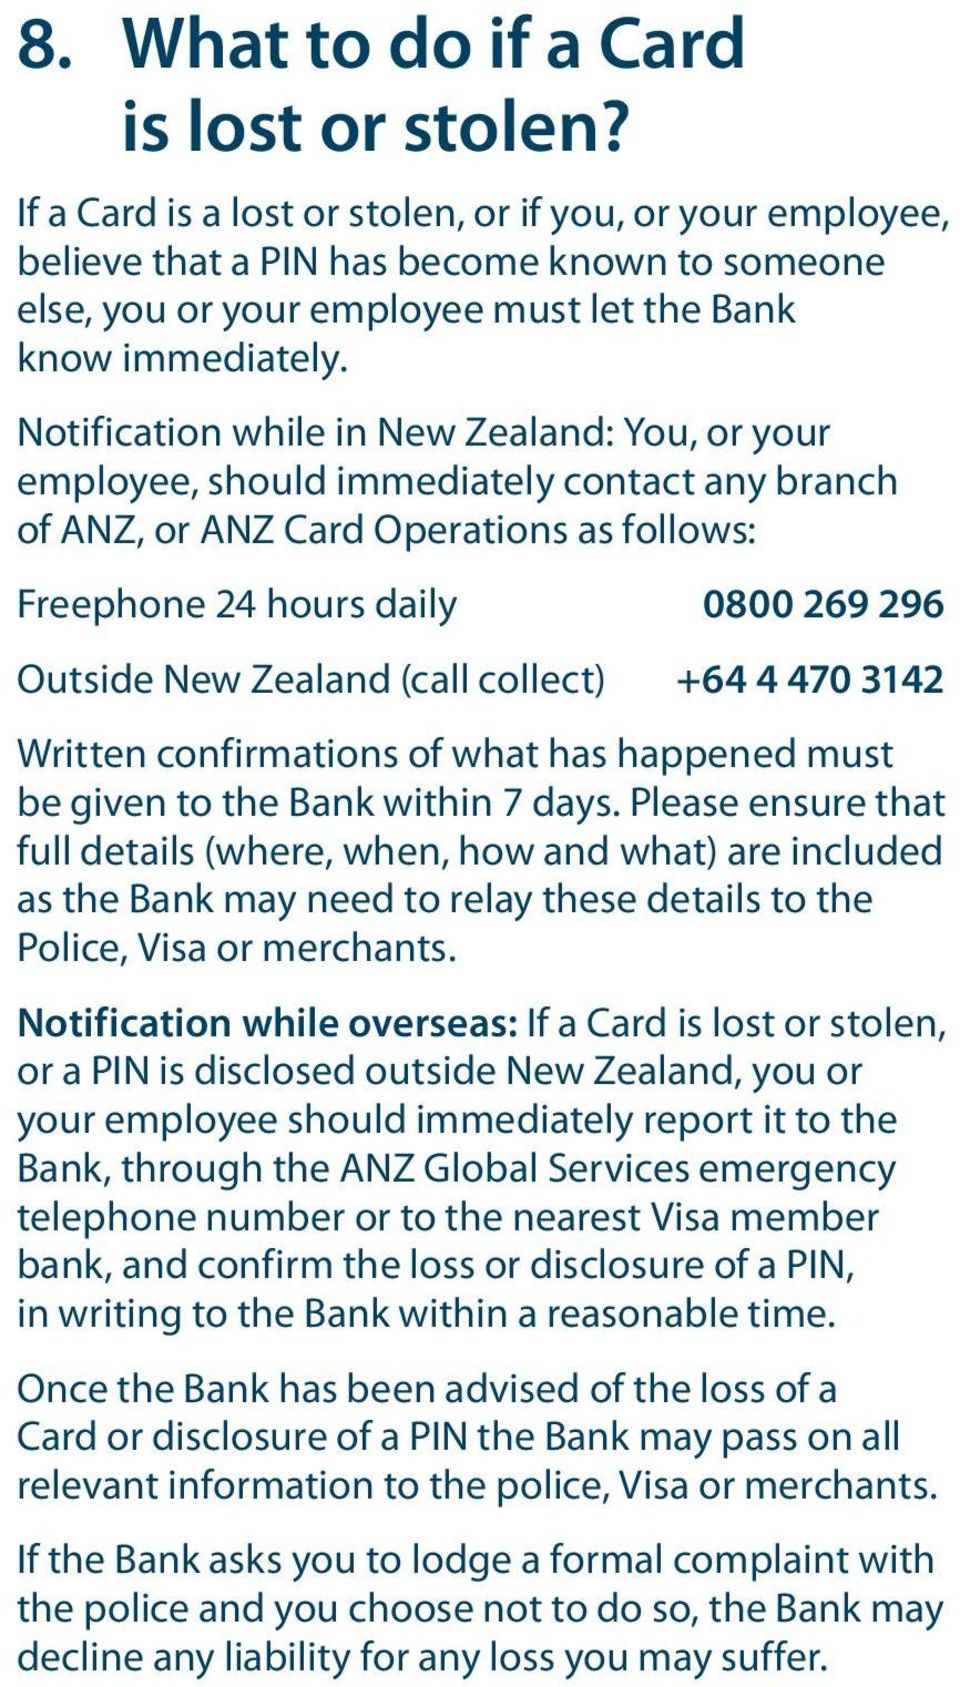 Notification while in New Zealand: You, or your employee, should immediately contact any branch of ANZ, or ANZ Card Operations as follows: Freephone 24 hours daily 0800 269 296 Outside New Zealand